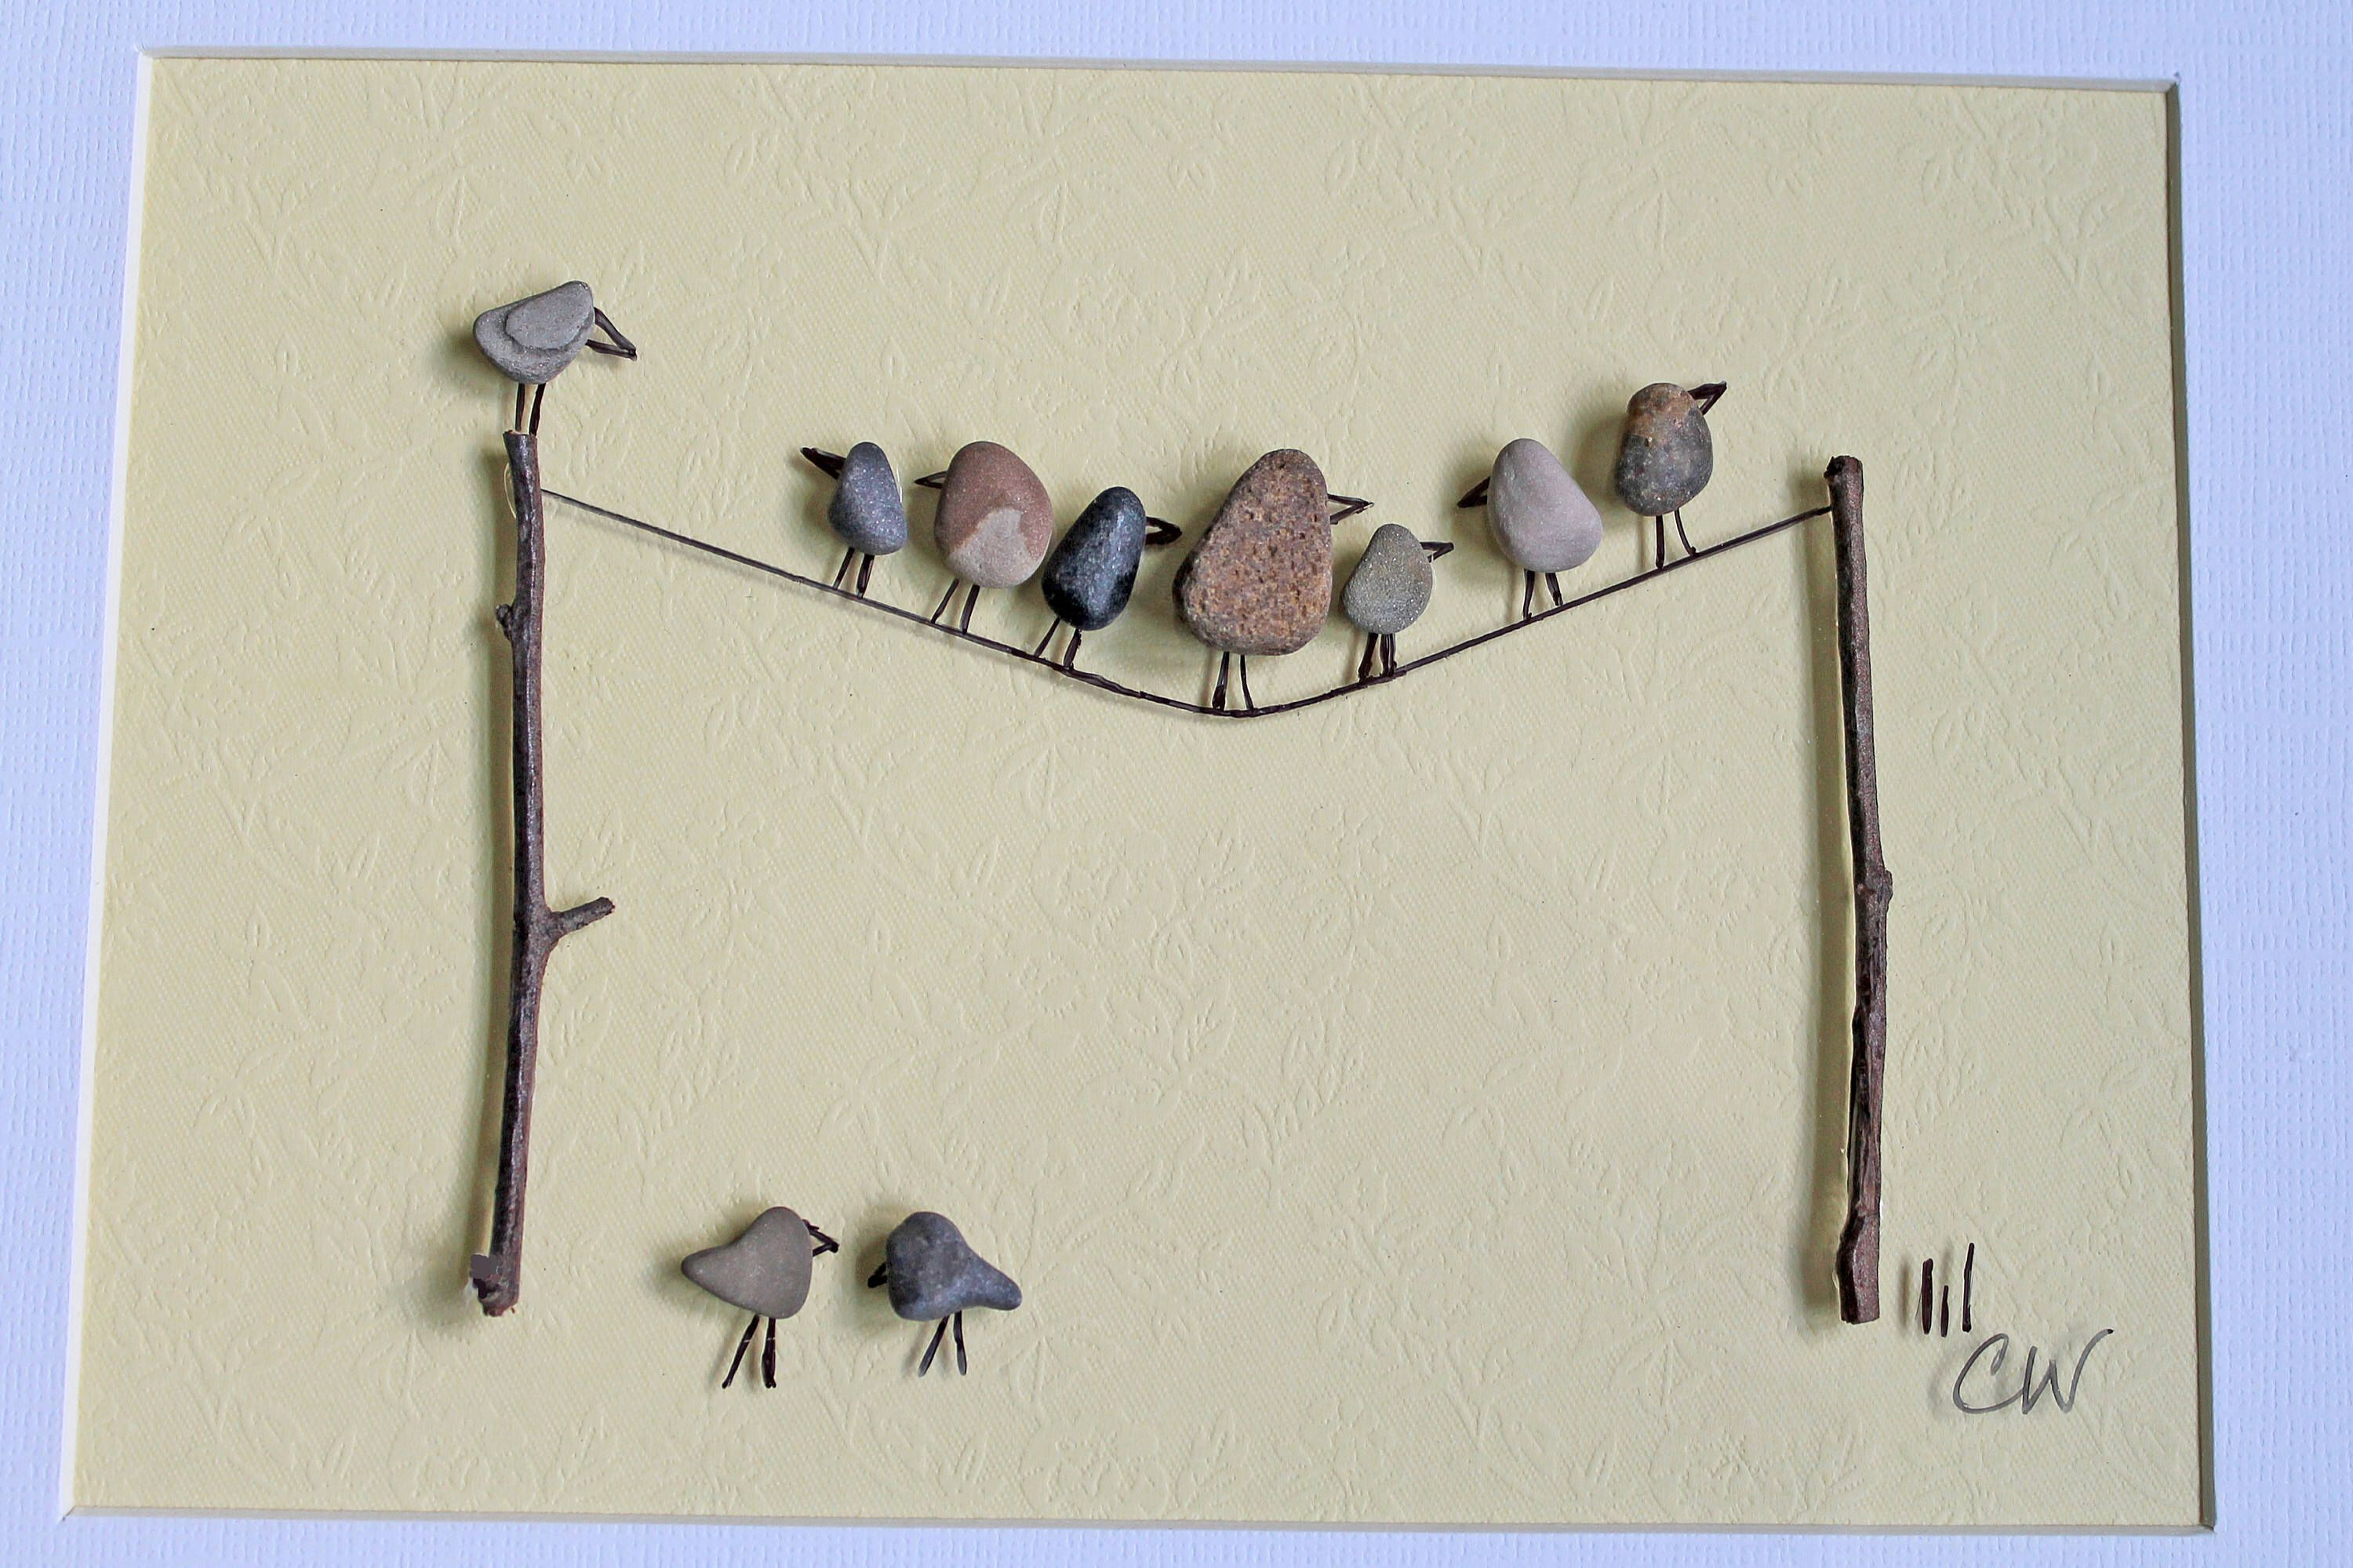 Birds On a Line - Pebble Art 11 x 13 Wall Art | Pinterest ...